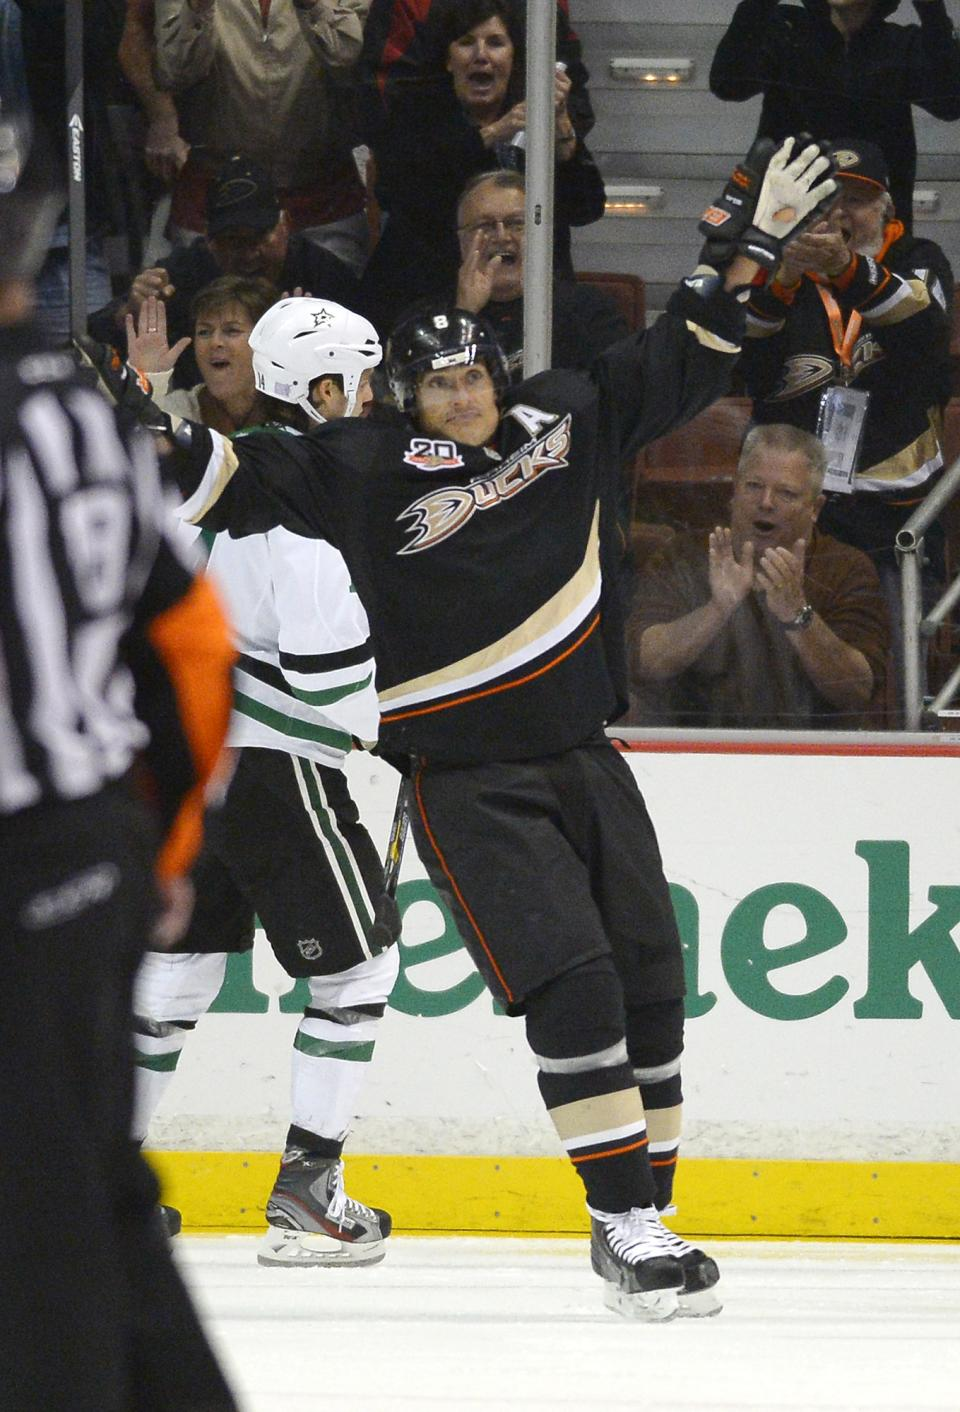 Ducks beat Stars 6-3 for 7th straight win